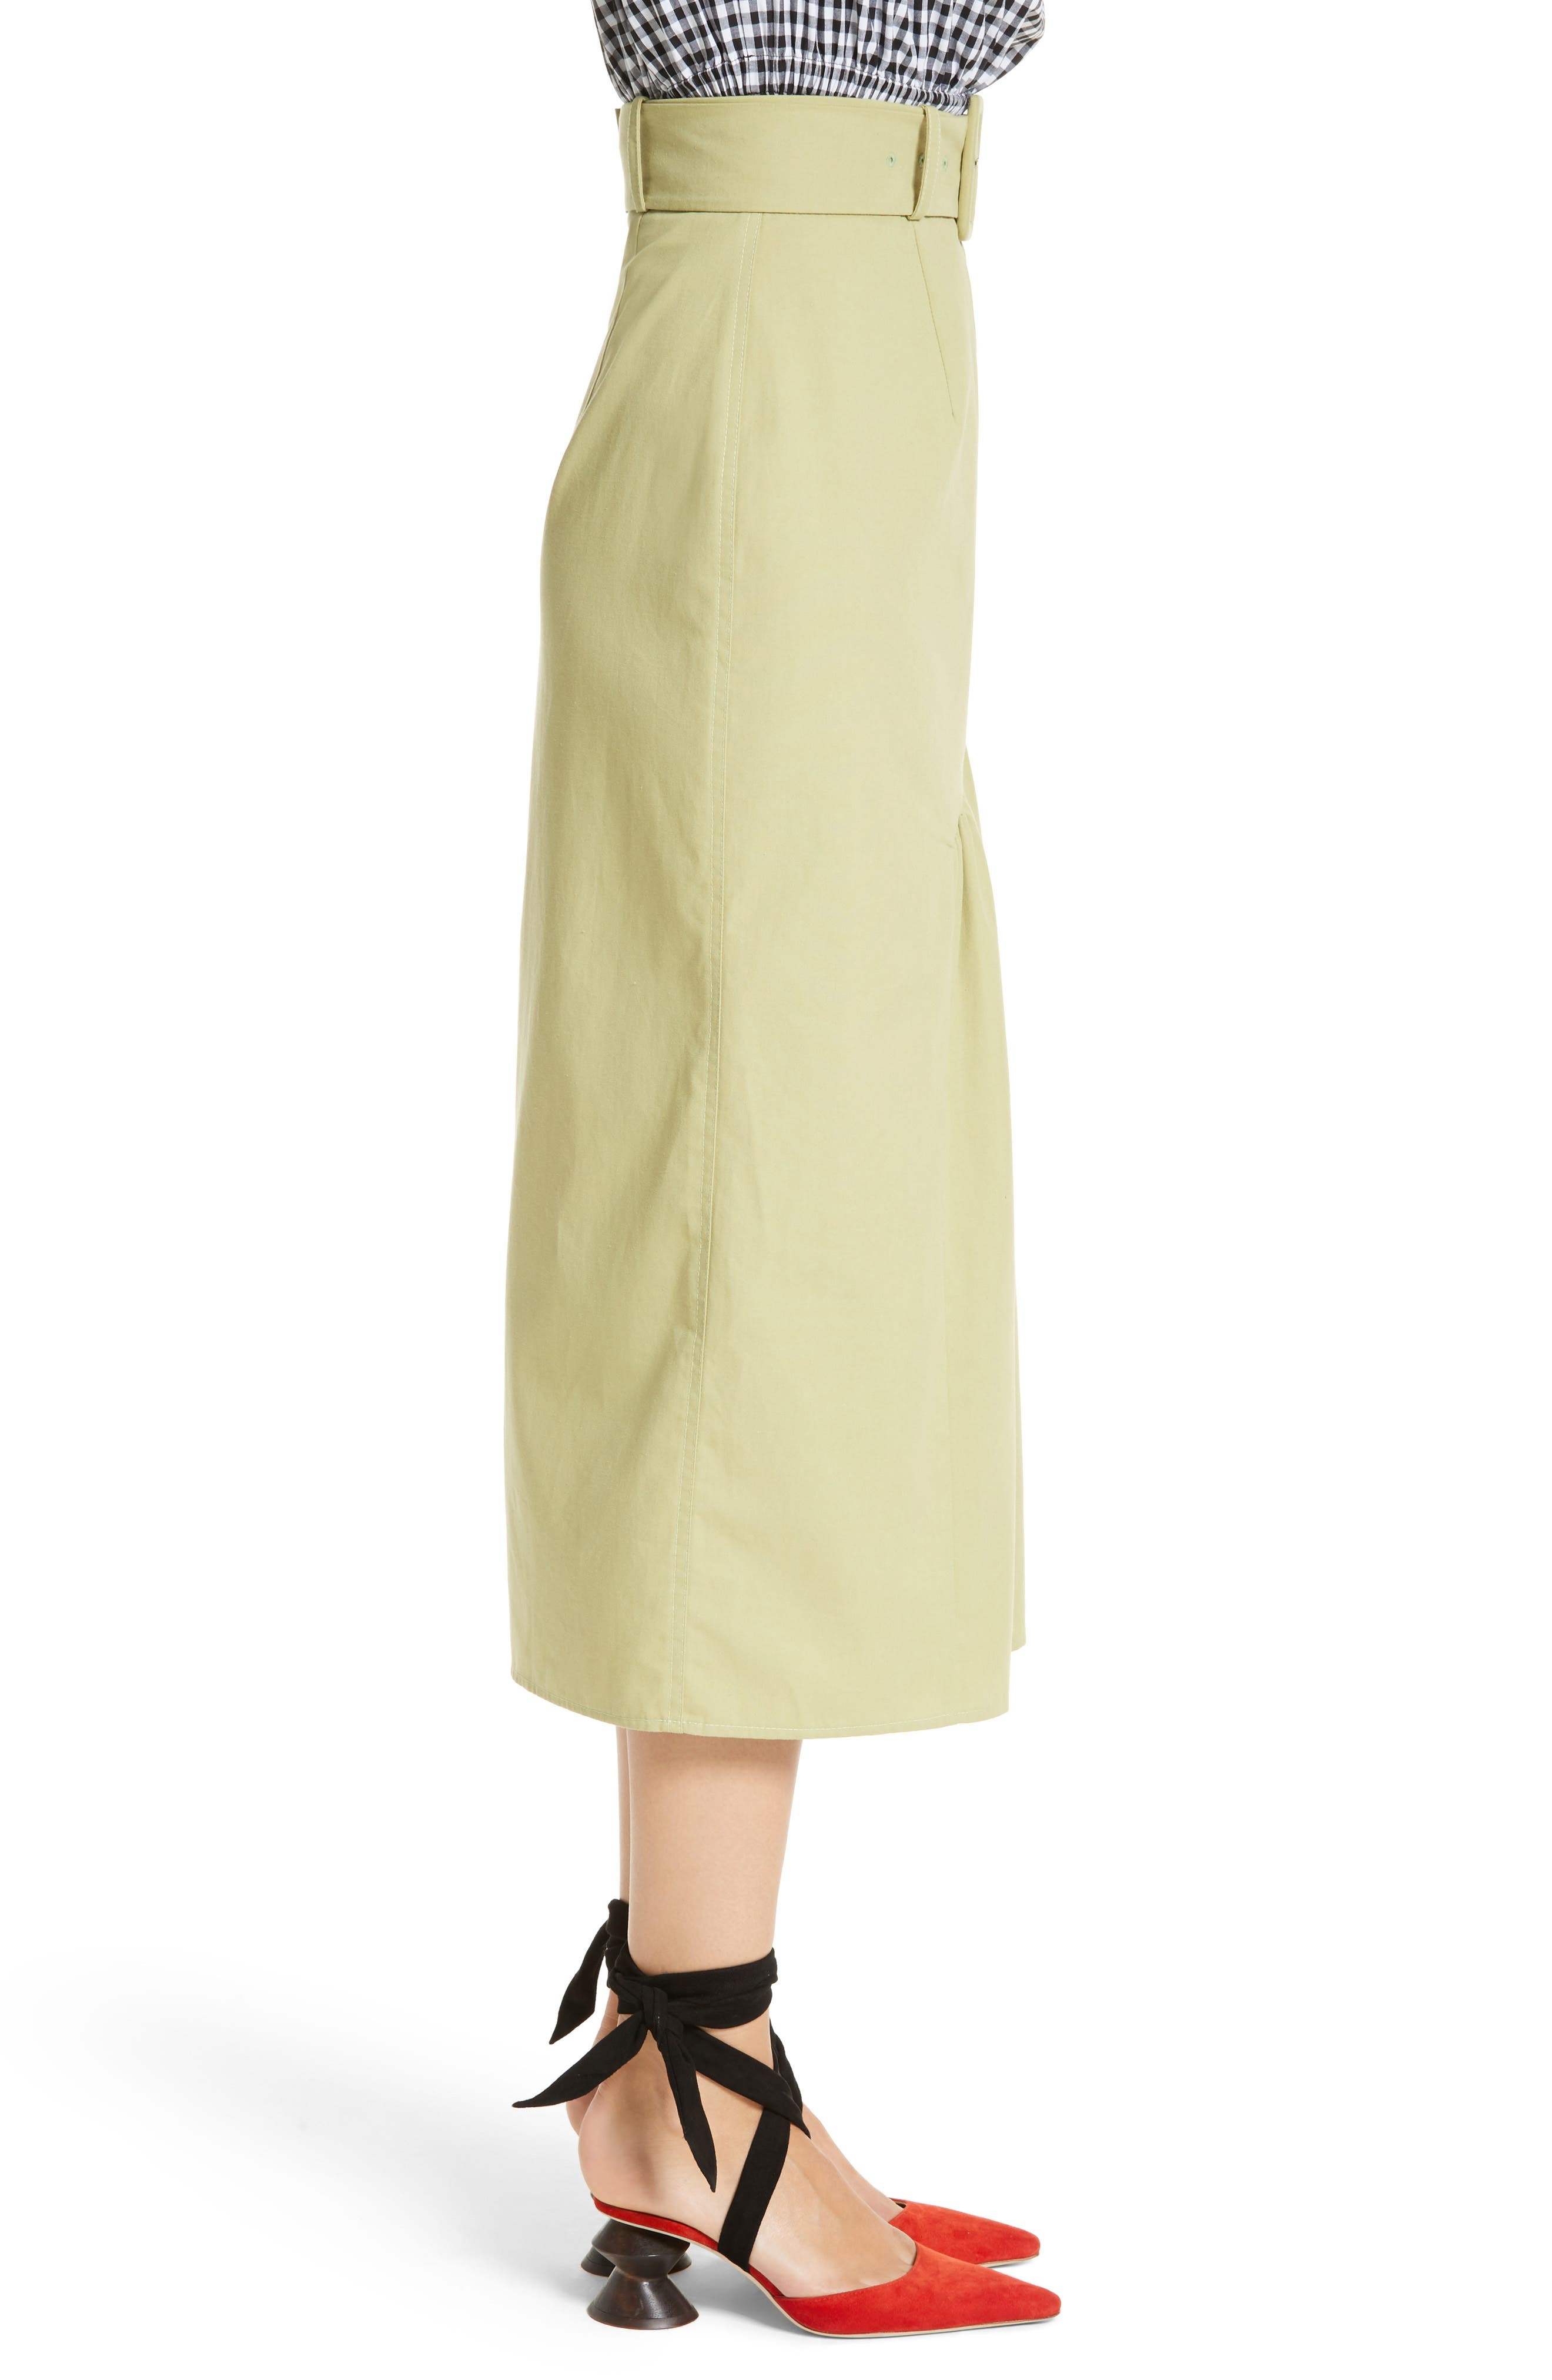 Belted High Waist Ruffle Skirt,                             Alternate thumbnail 3, color,                             Cotton Sage Green